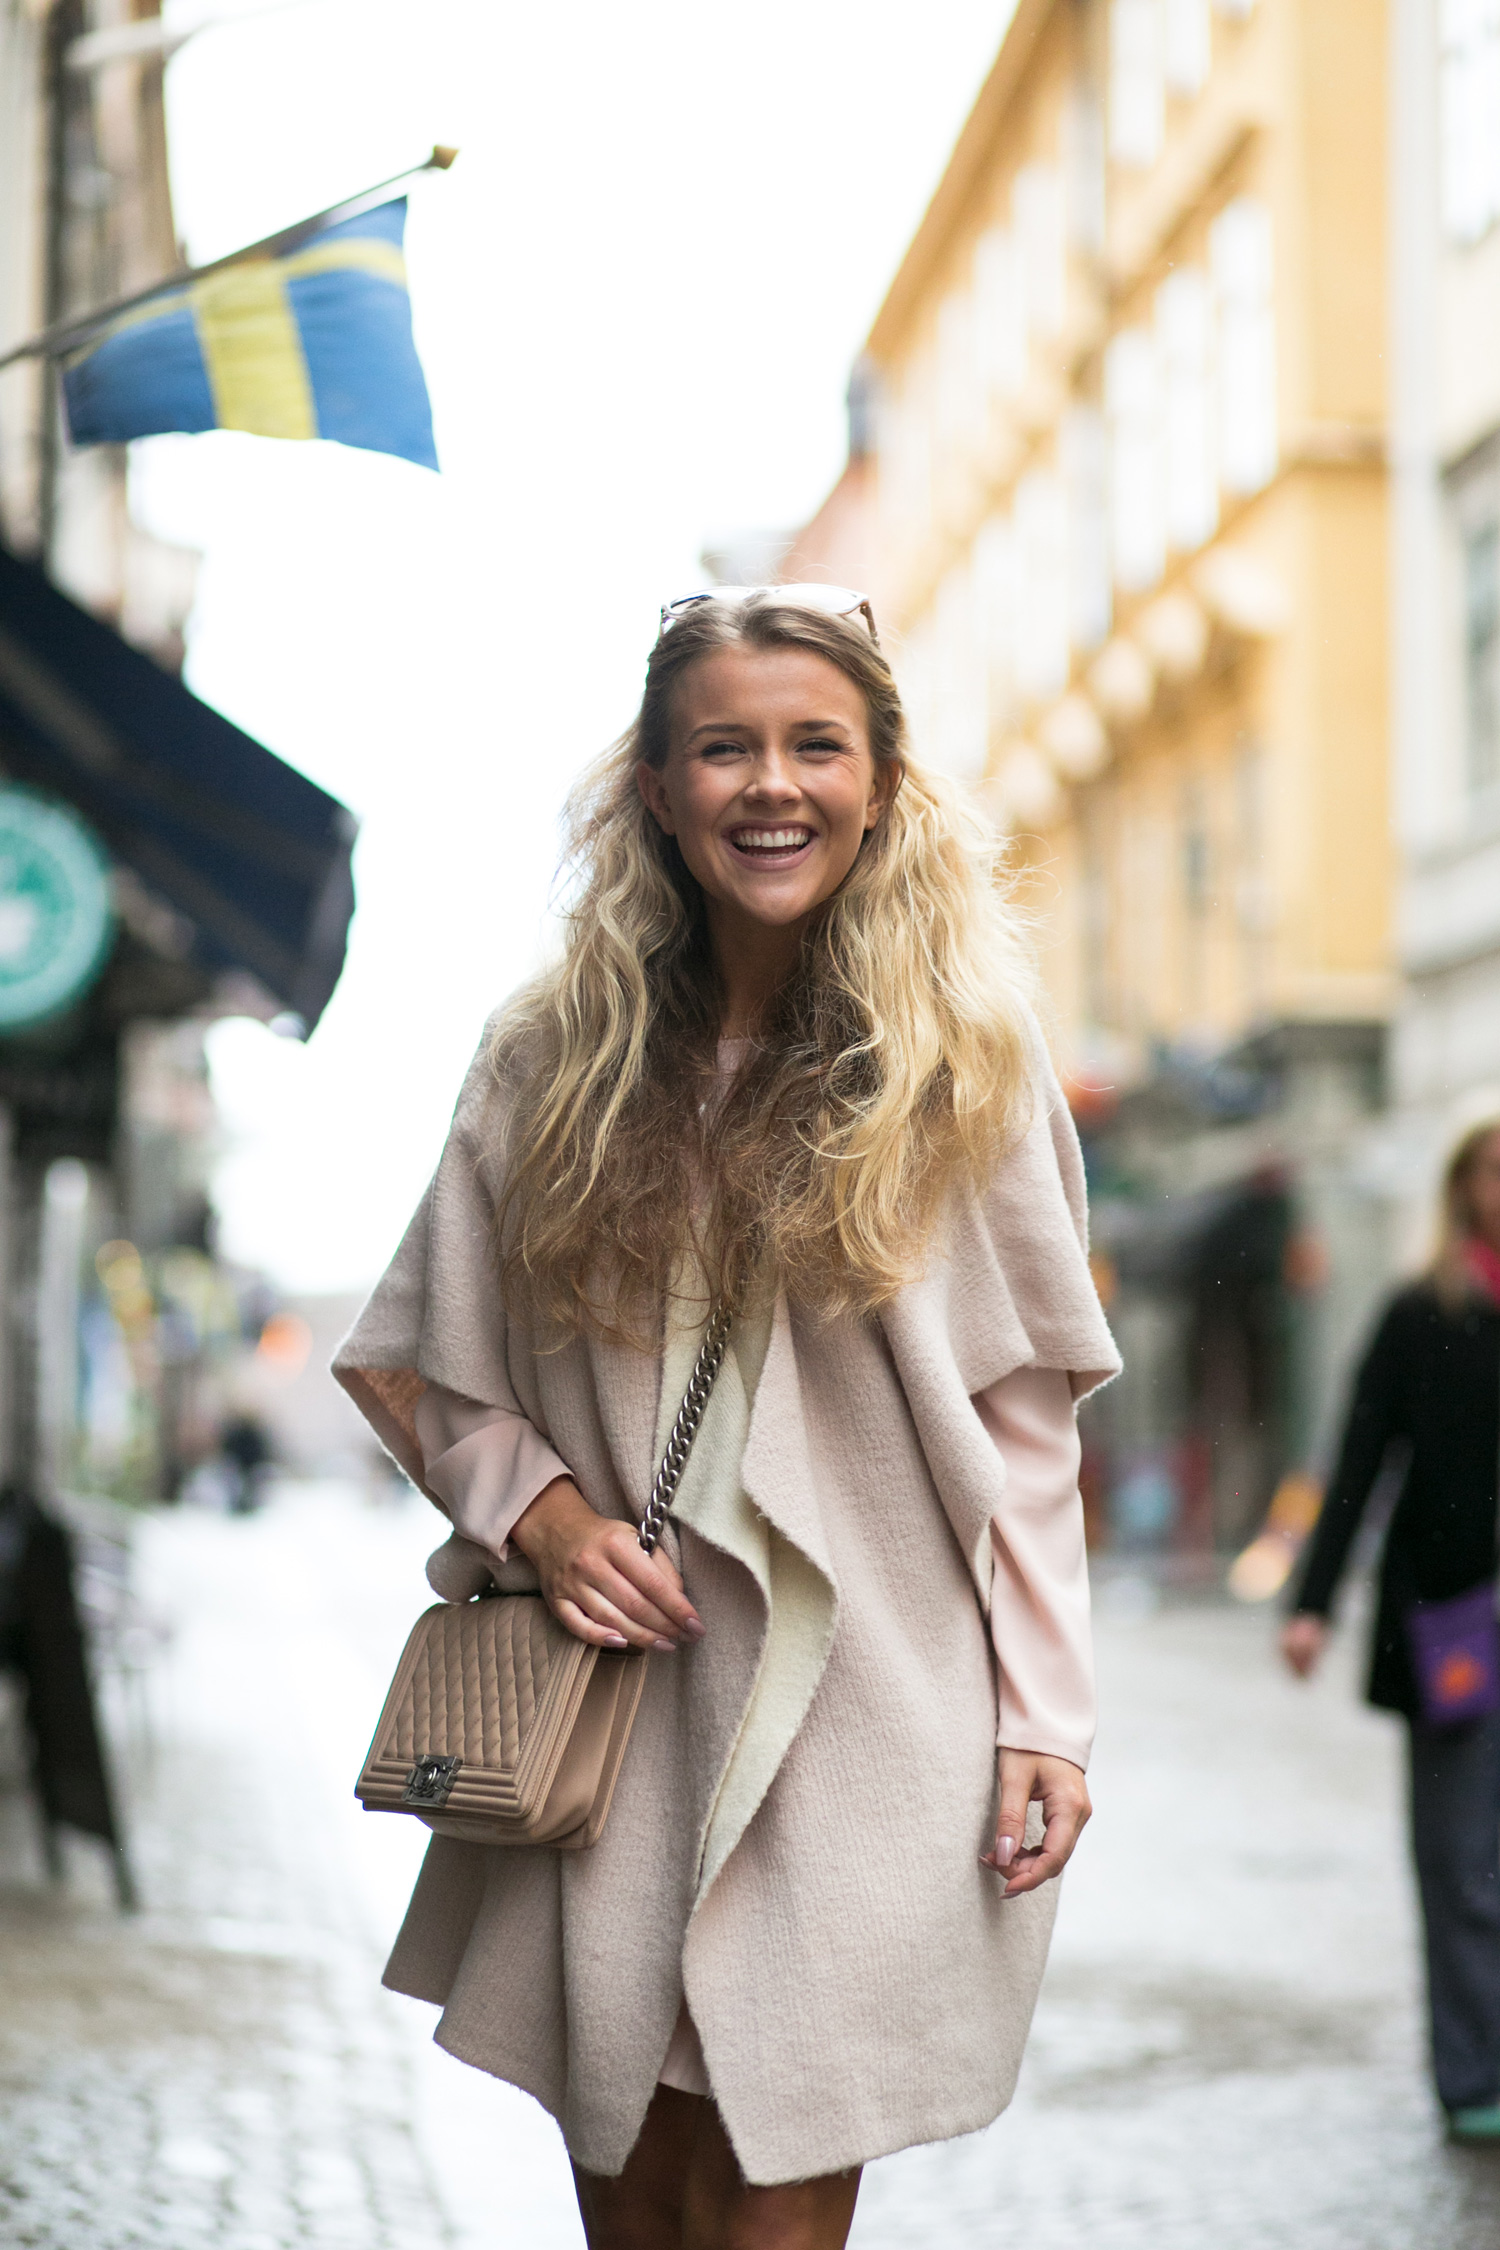 007-stockholm-blogger-fashion.jpg